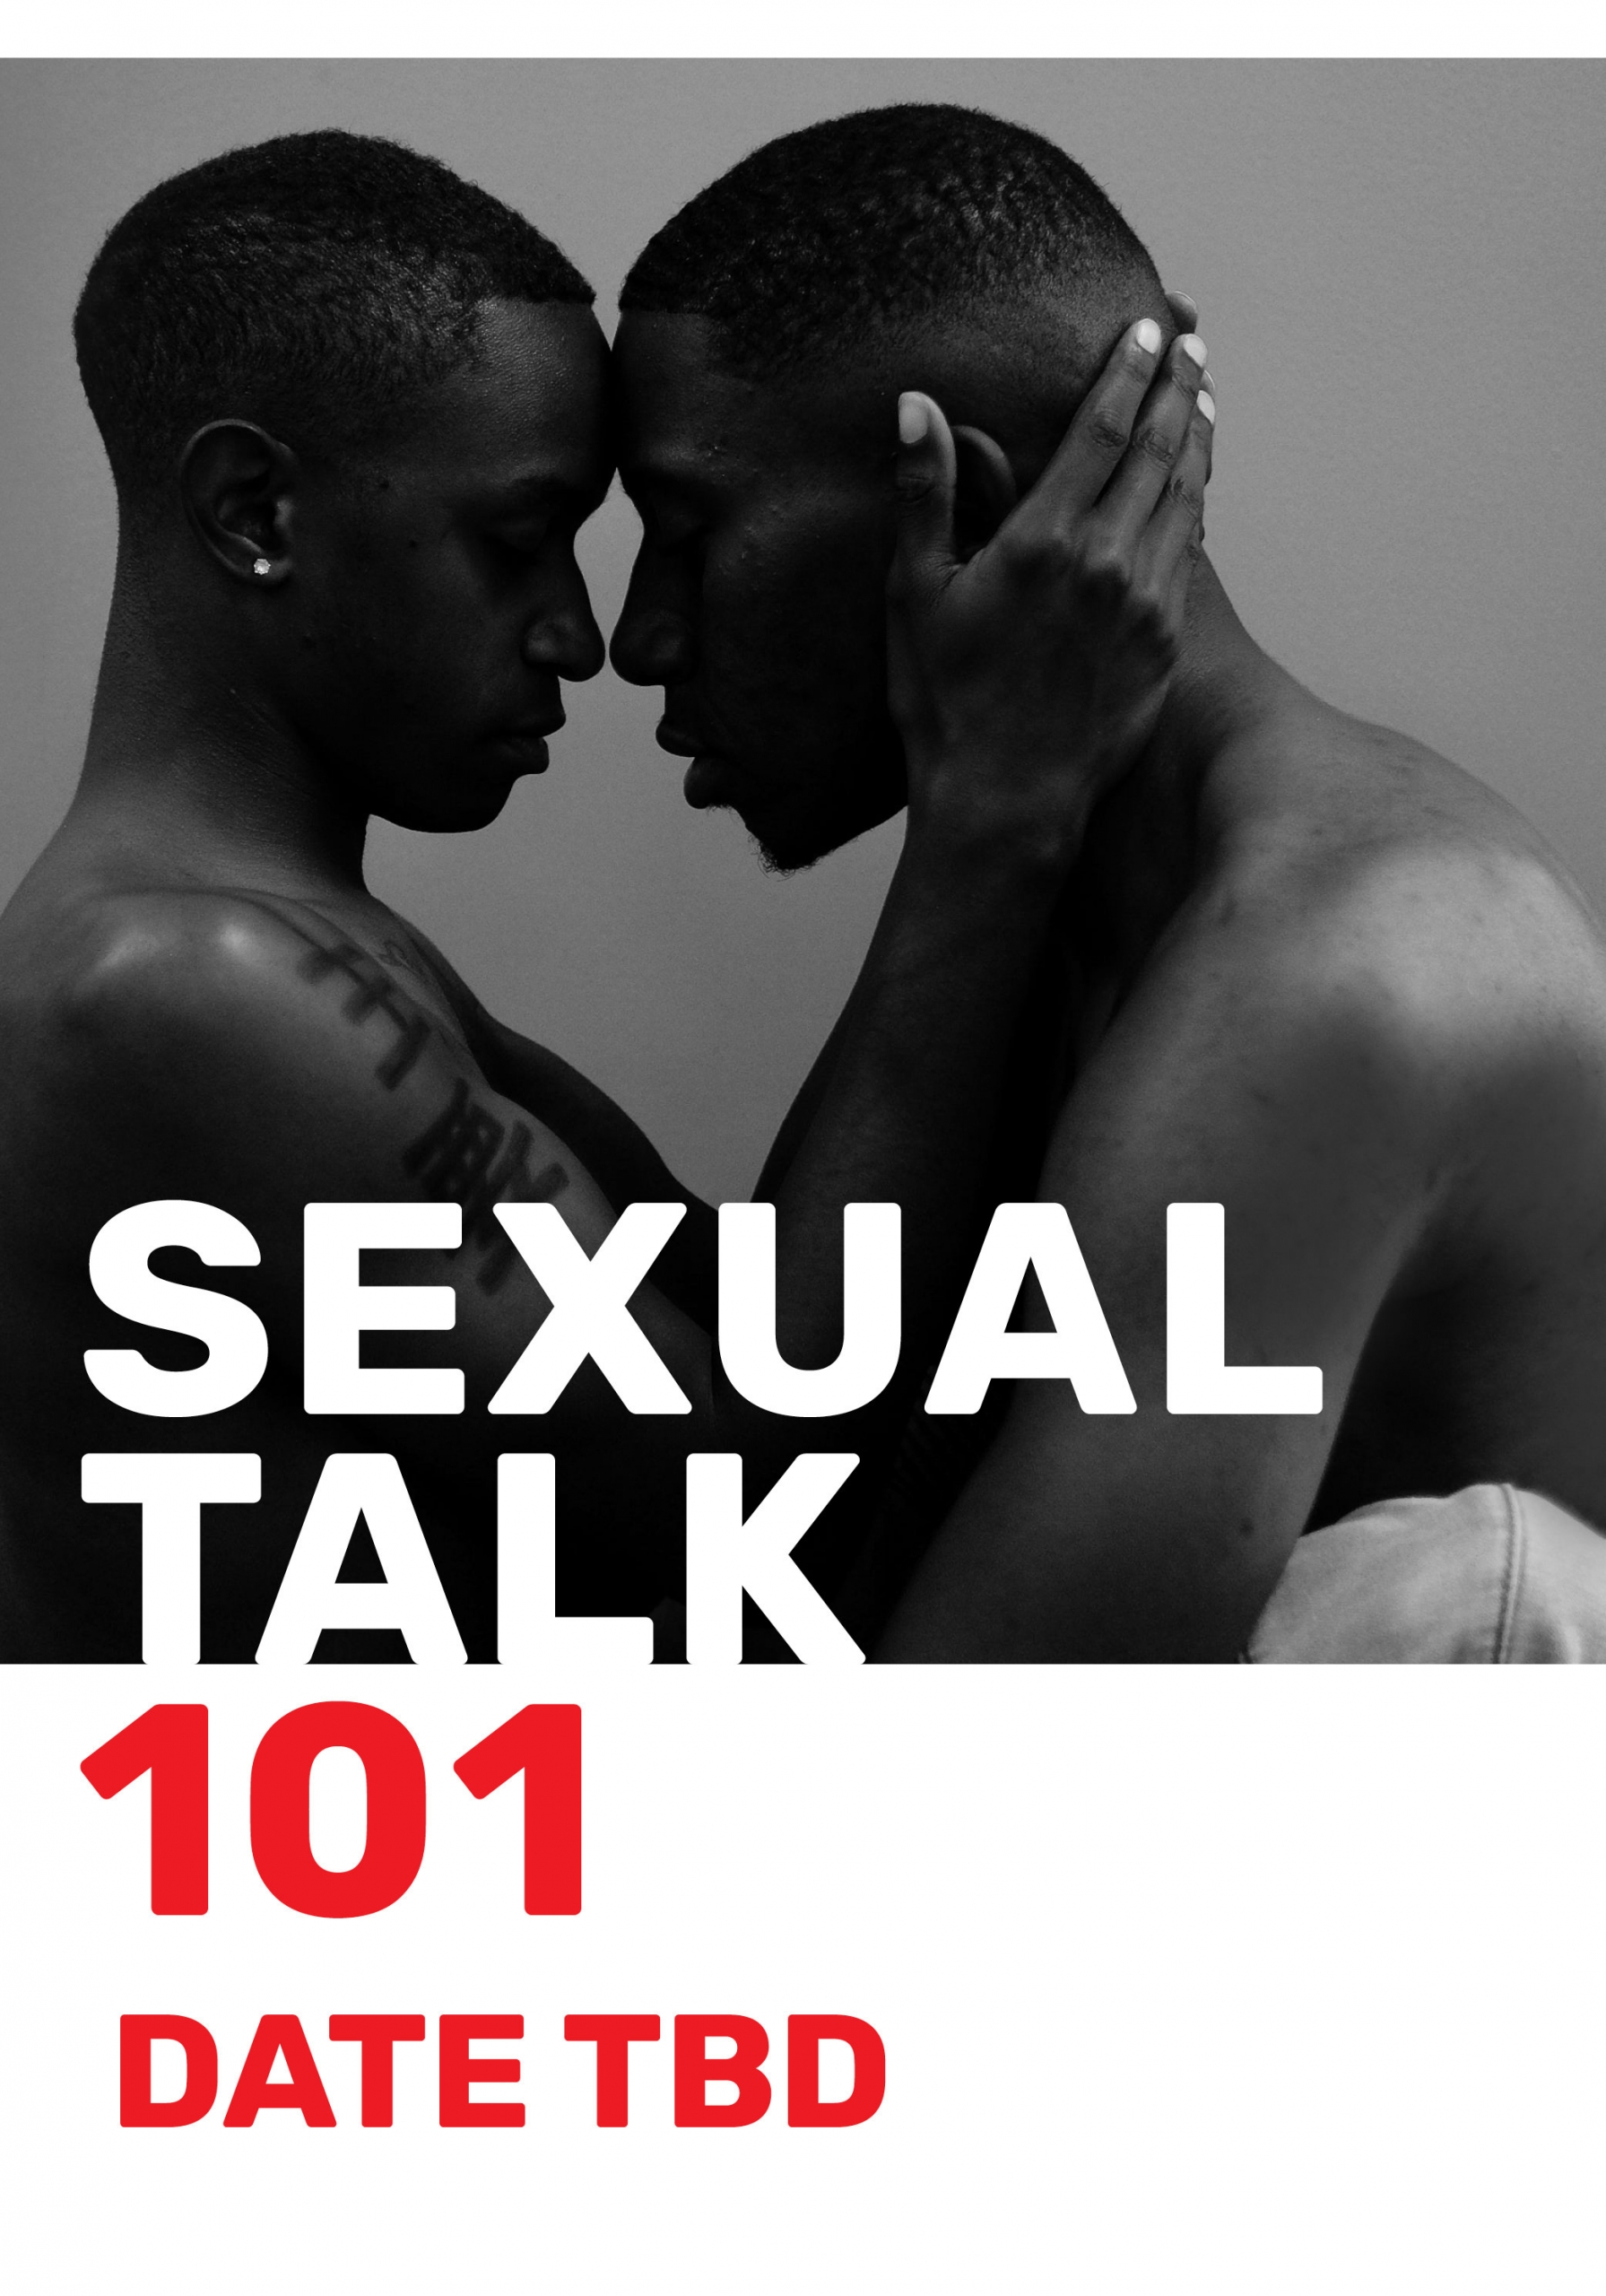 Sexual Talk Workshop at Brooklyn Community Pride Center